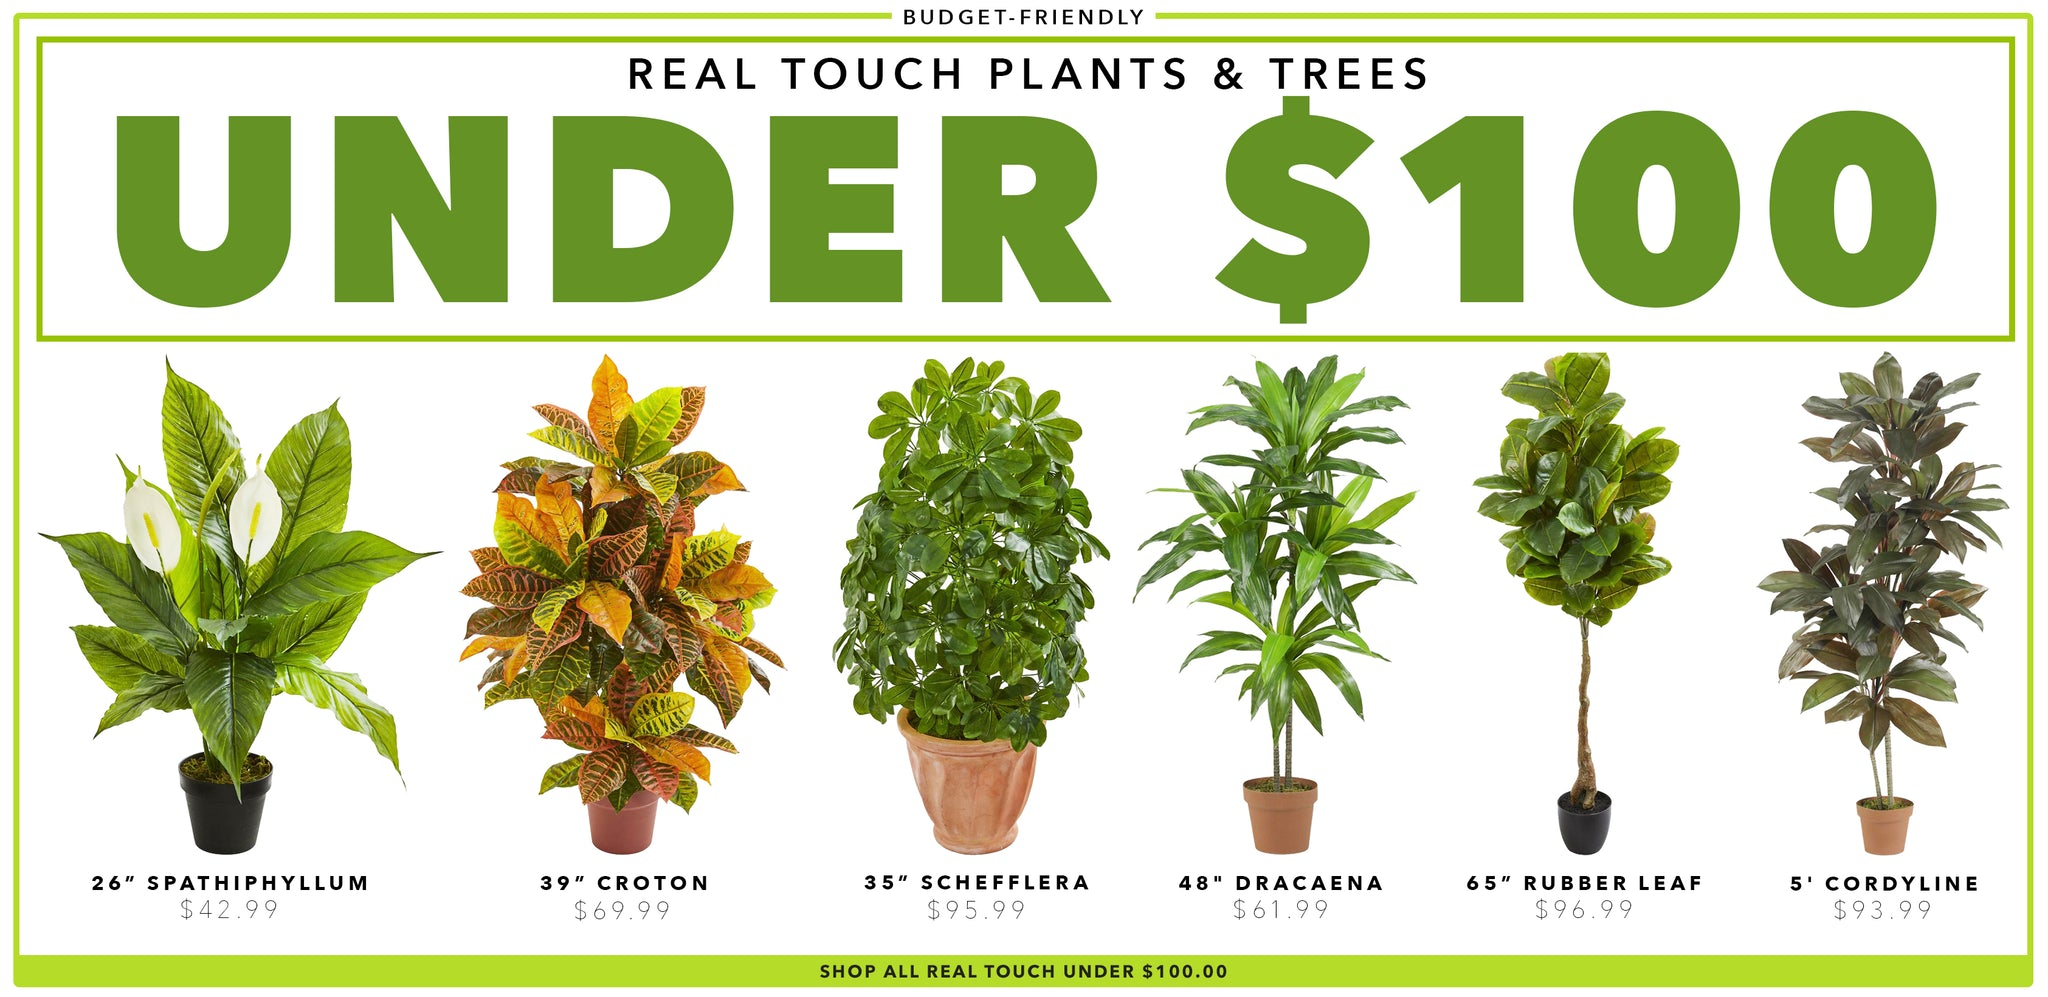 Real Touch Plants & Trees Under $100